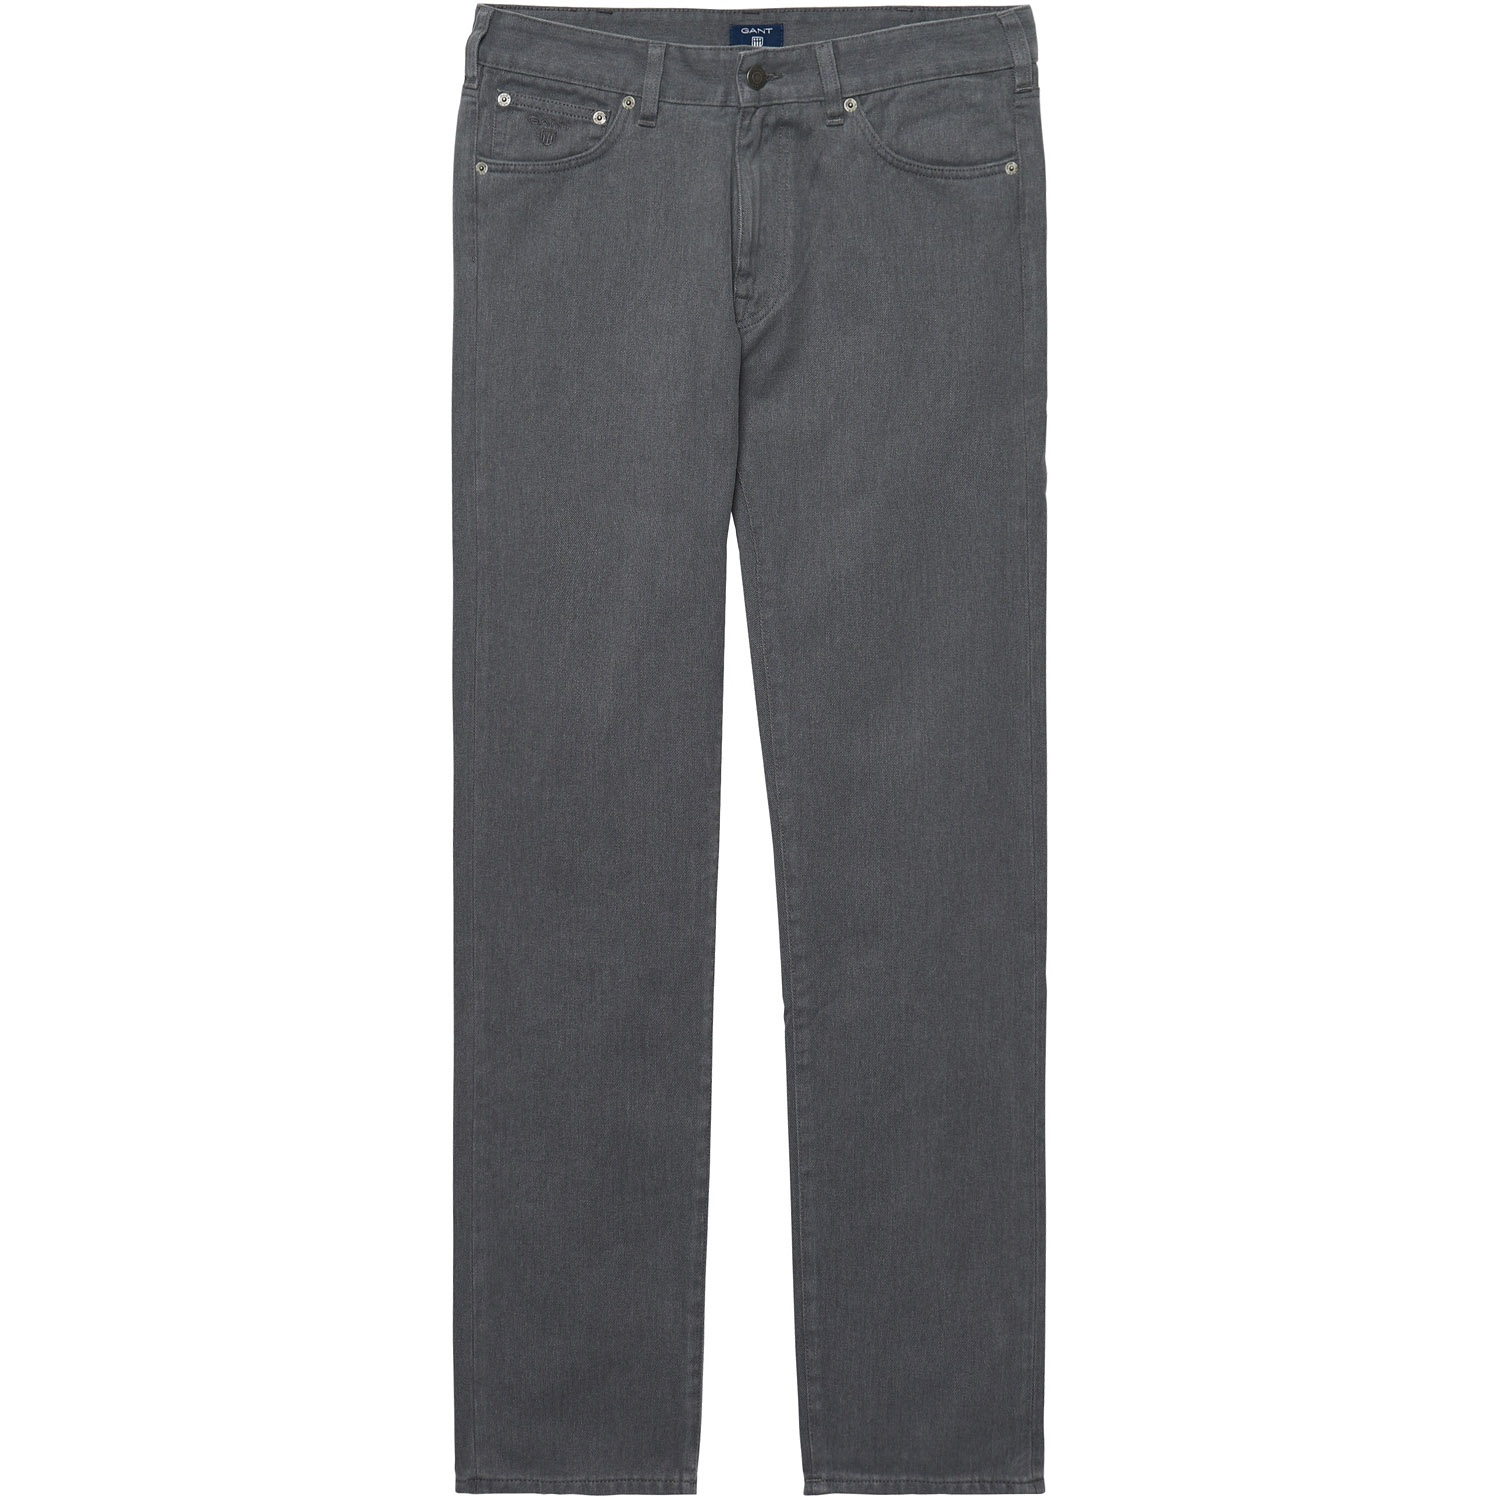 Gant Graphite Melange GANT Regular Fit Twill Jeans